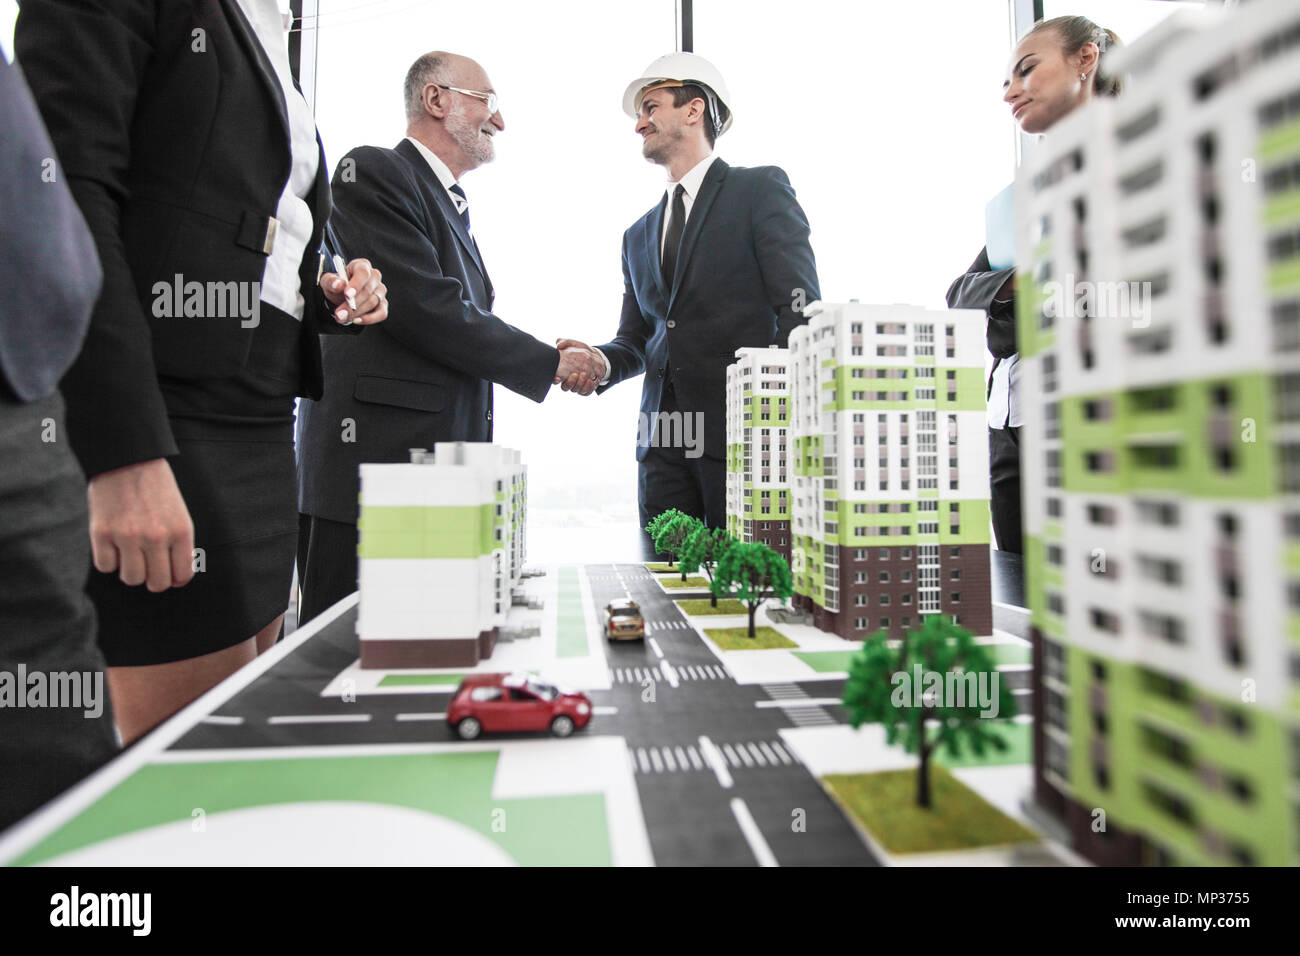 Business people standing near residential quarter houses models and shaking hands, meeting of architects and investors - Stock Image